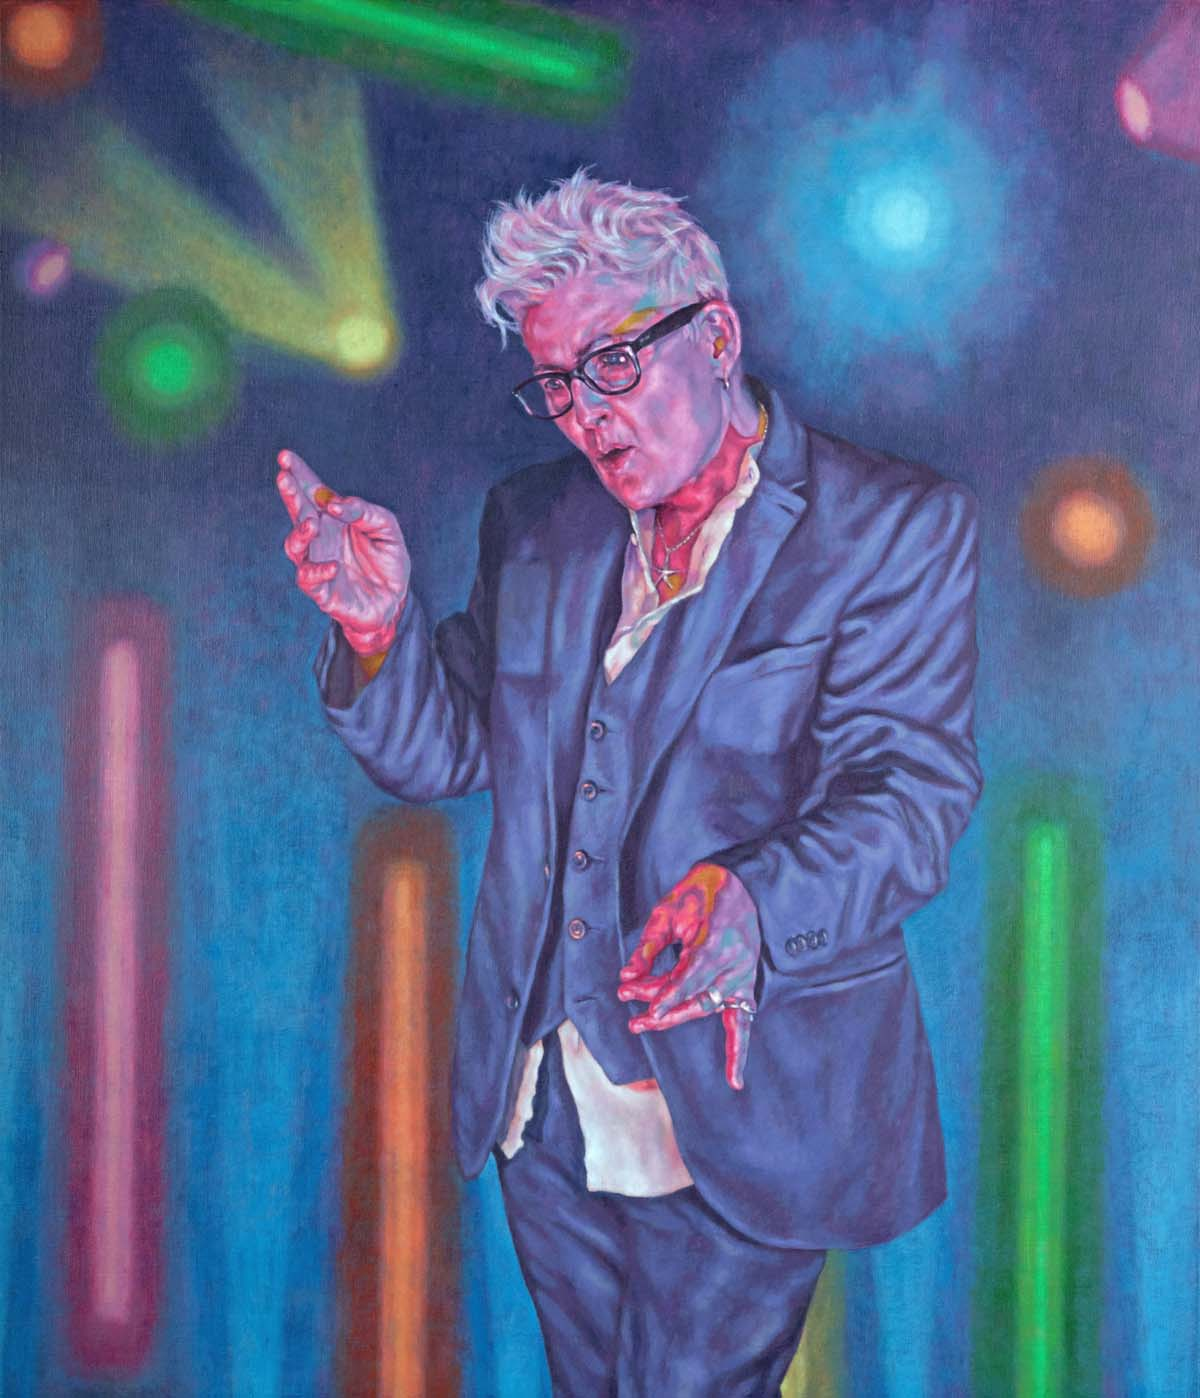 painting of a woman with short grey hair glasses and suit performing on a brightly lit stage